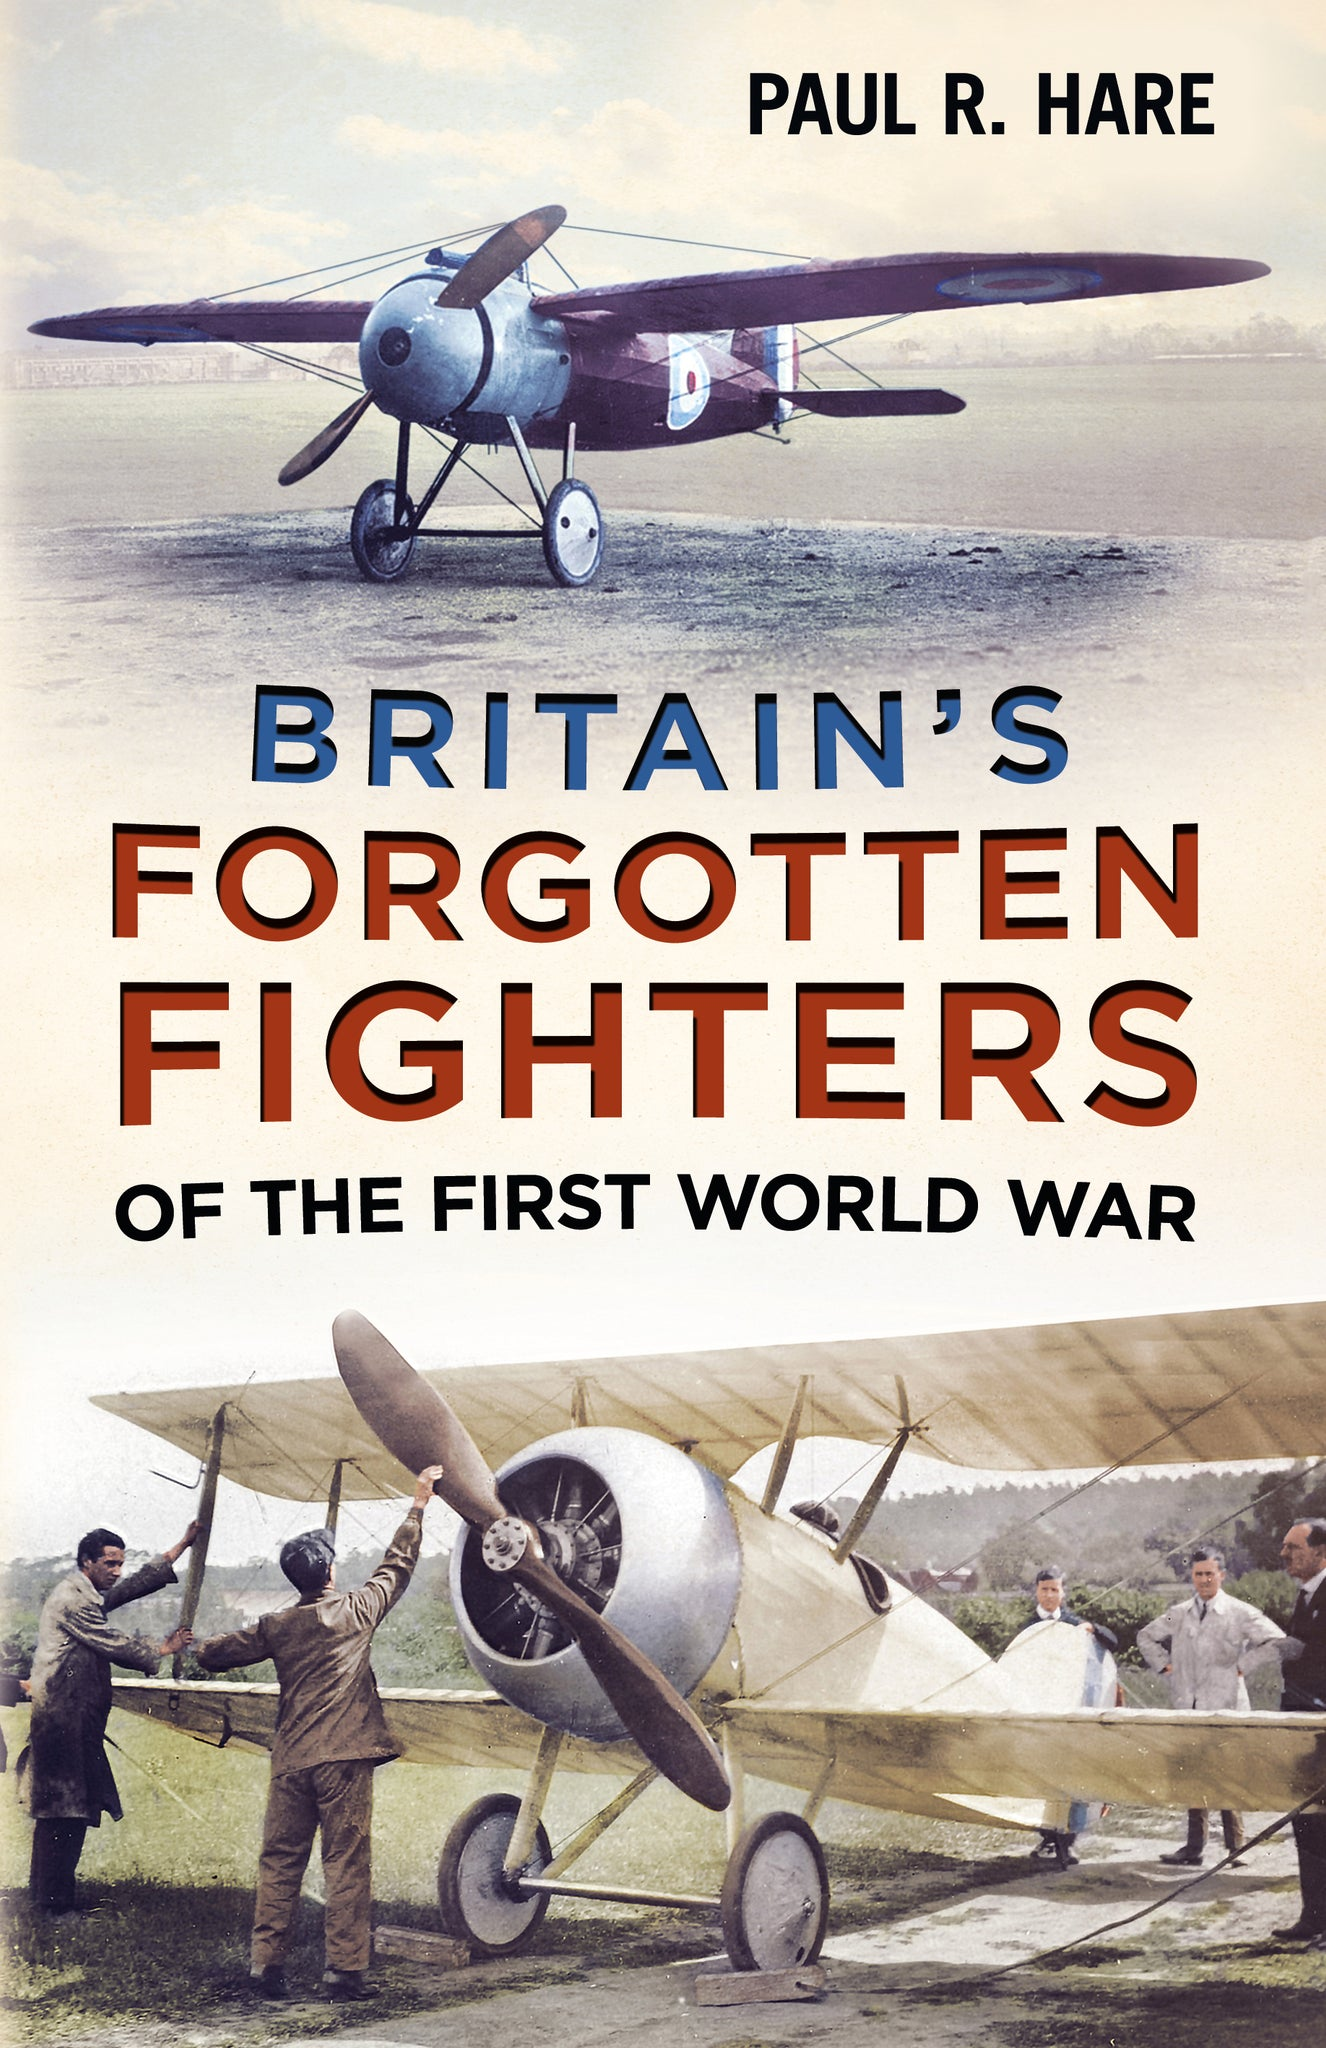 Britain's Forgotten Fighters of the First World War - available from Fonthill Media